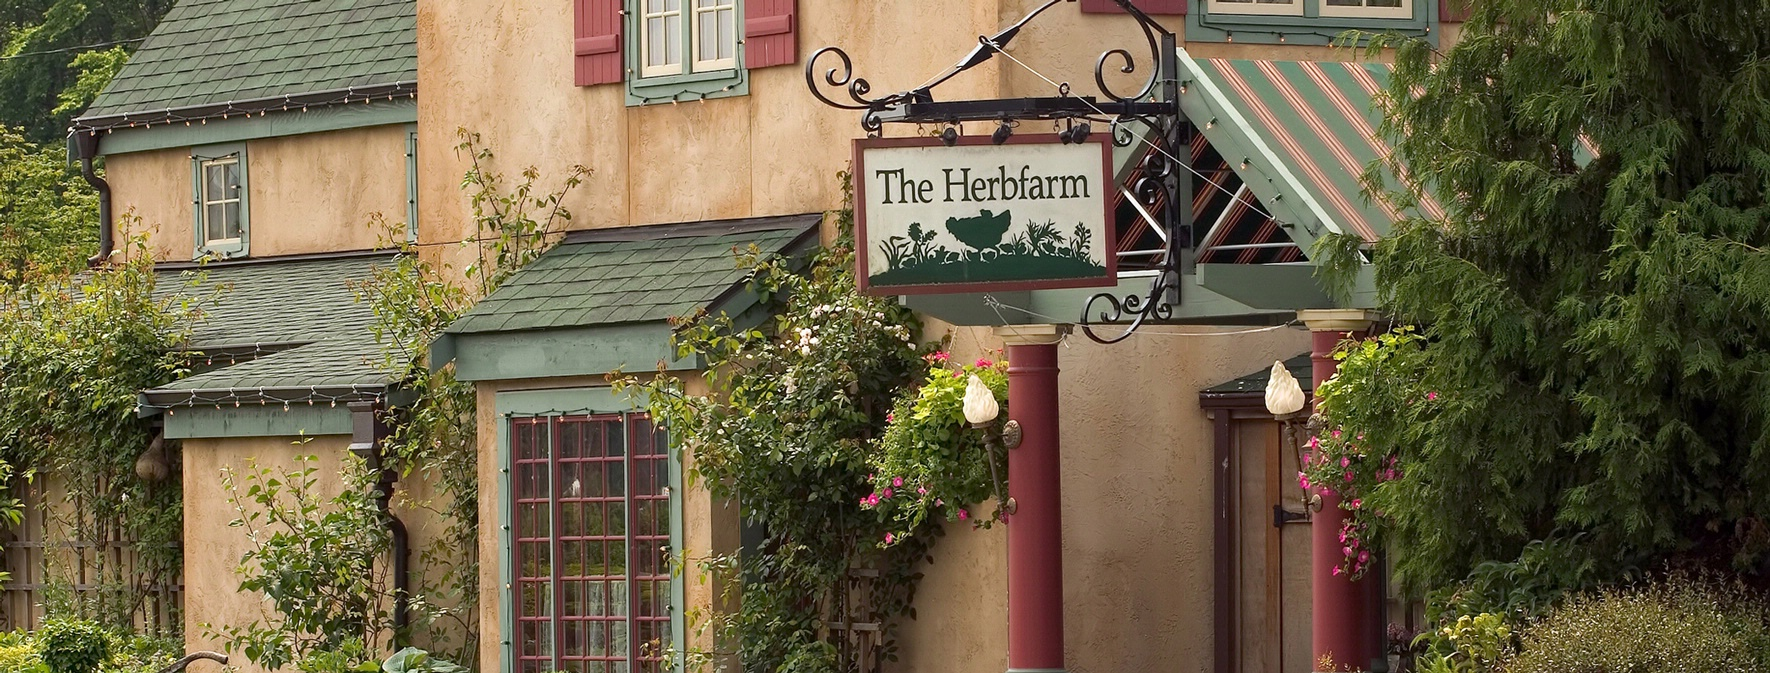 The Herbfarm Exterior: Courtesy of Willows Lodge